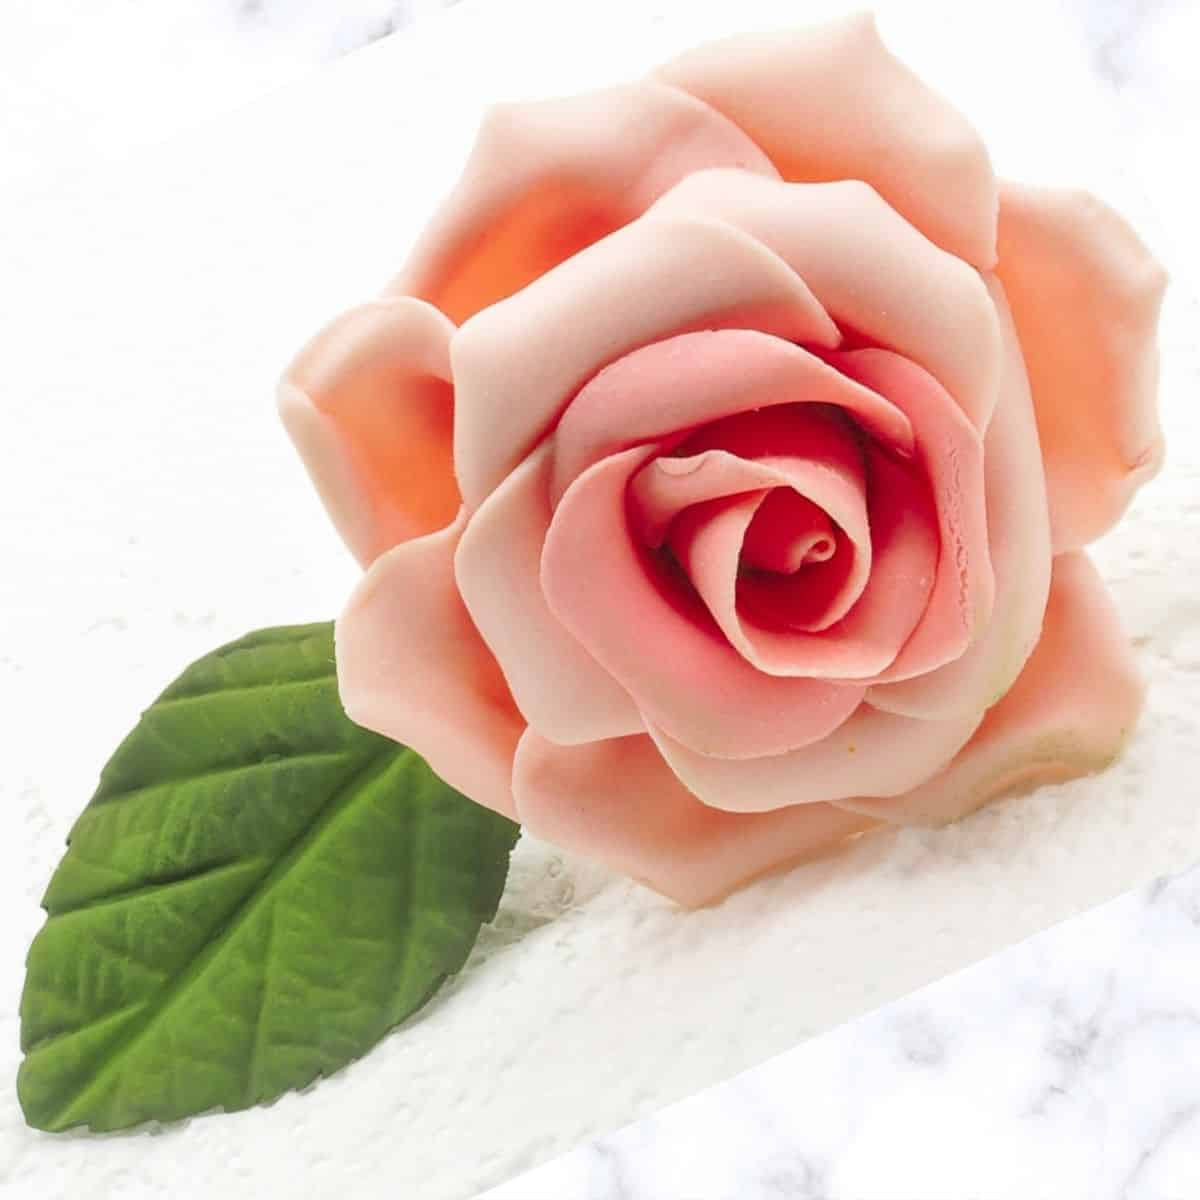 a pink gum paste rose against a marble background